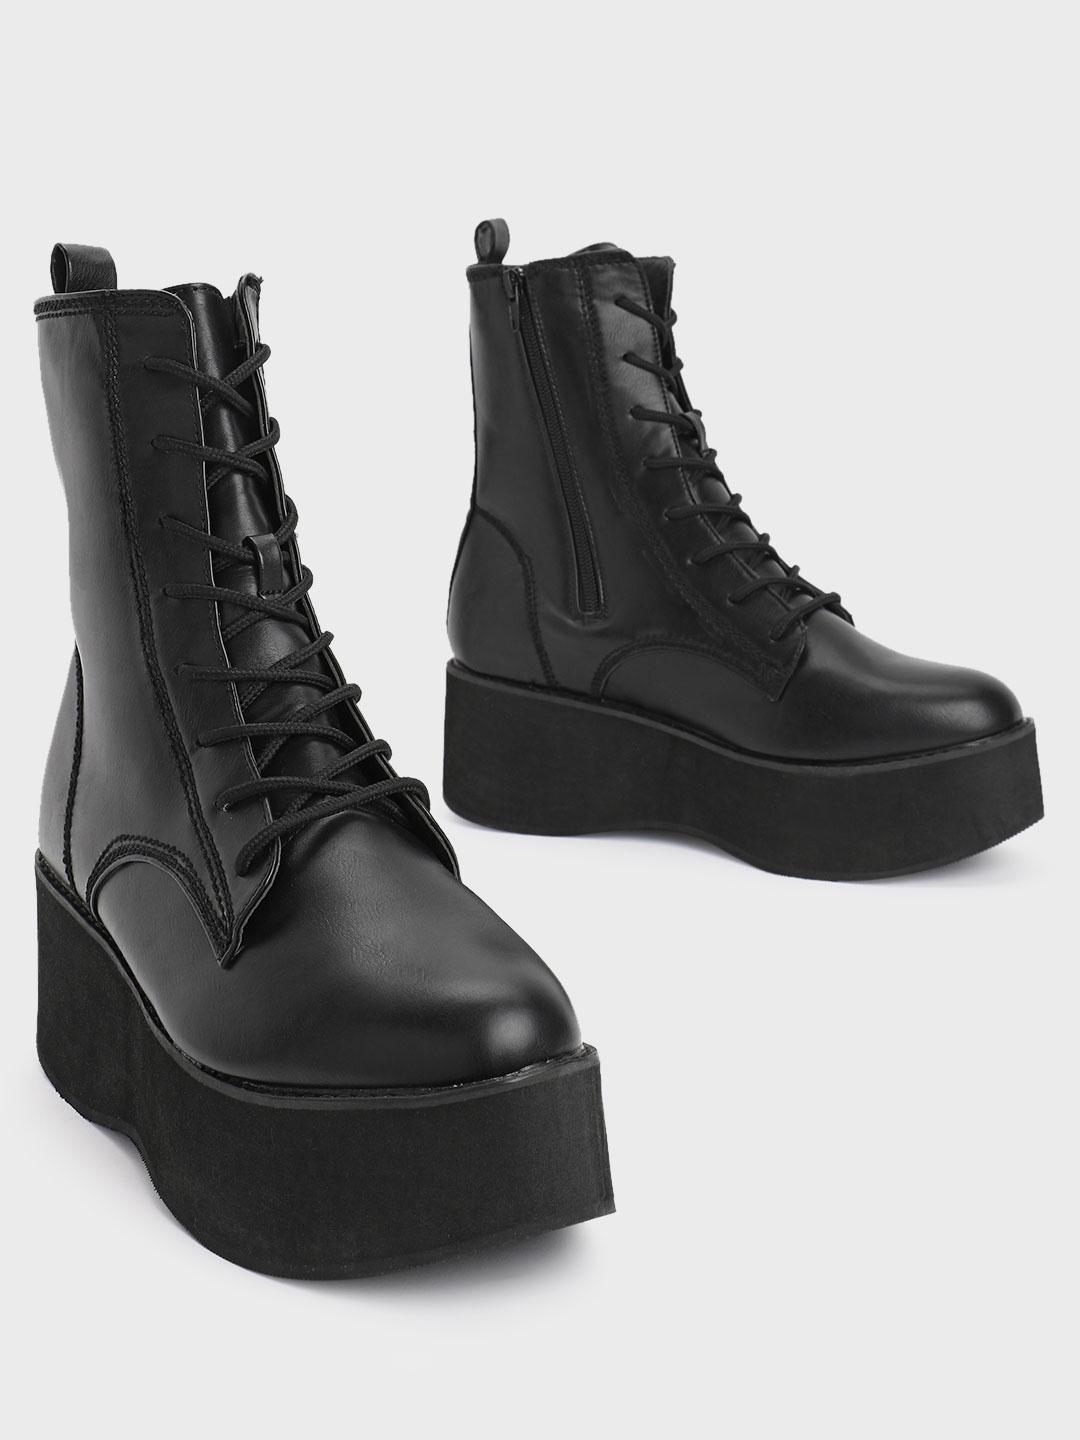 Truffle Collection Black Wedge Heel Lace-Up Boots 1